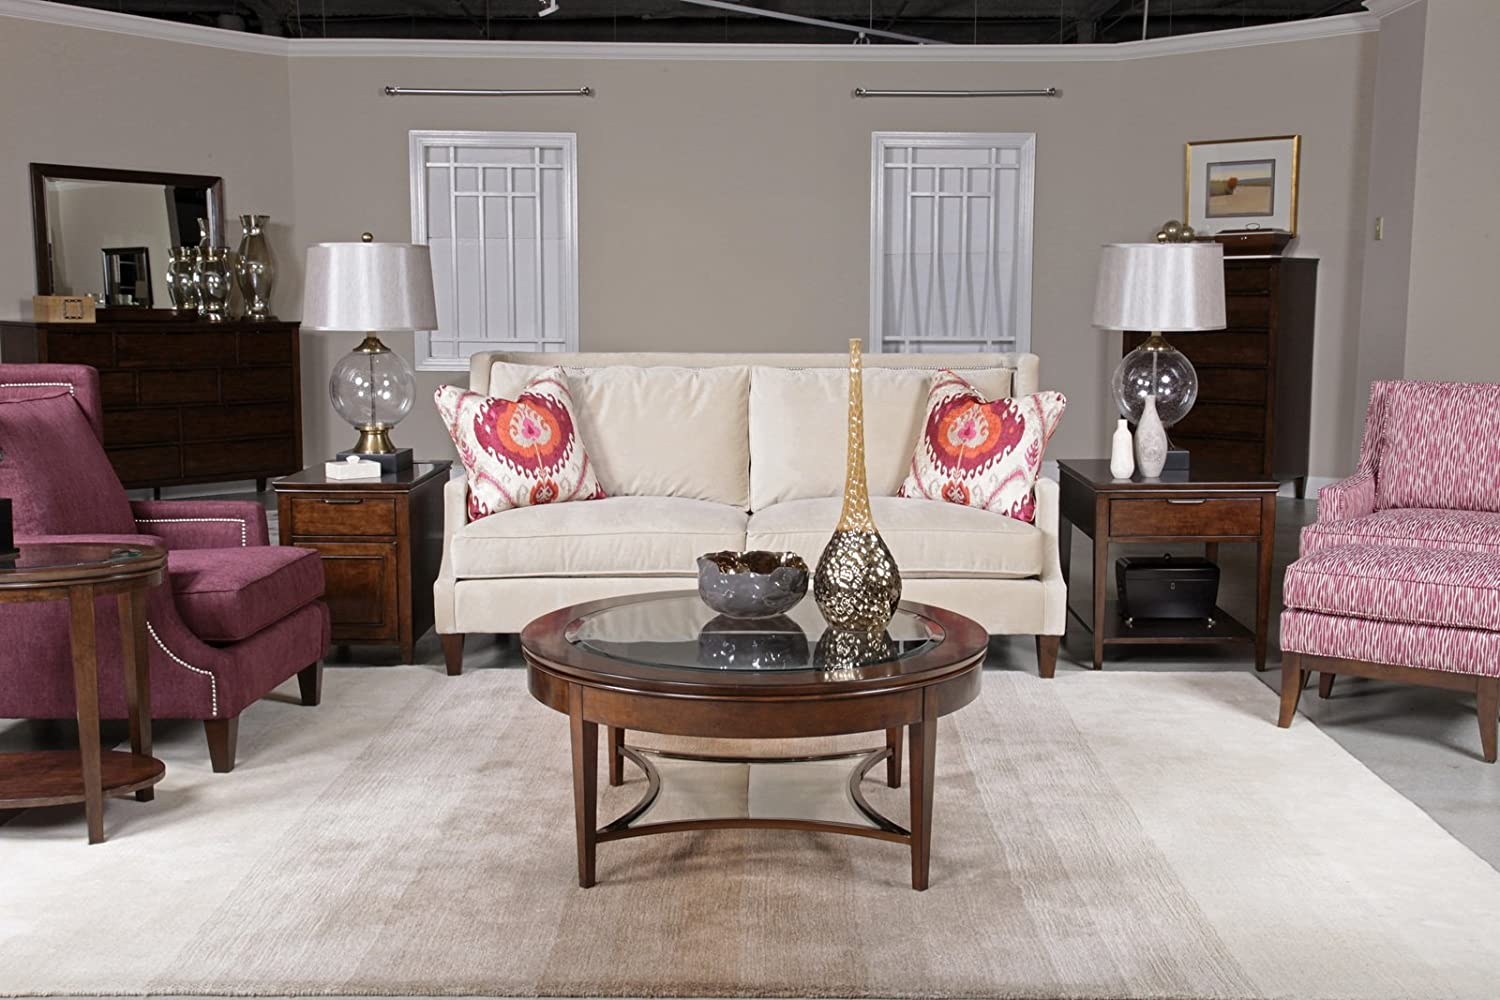 Amazon Com Kincaid Elise Coffee Table Set With Cocktail Table End Table And Other Items Furniture Decor